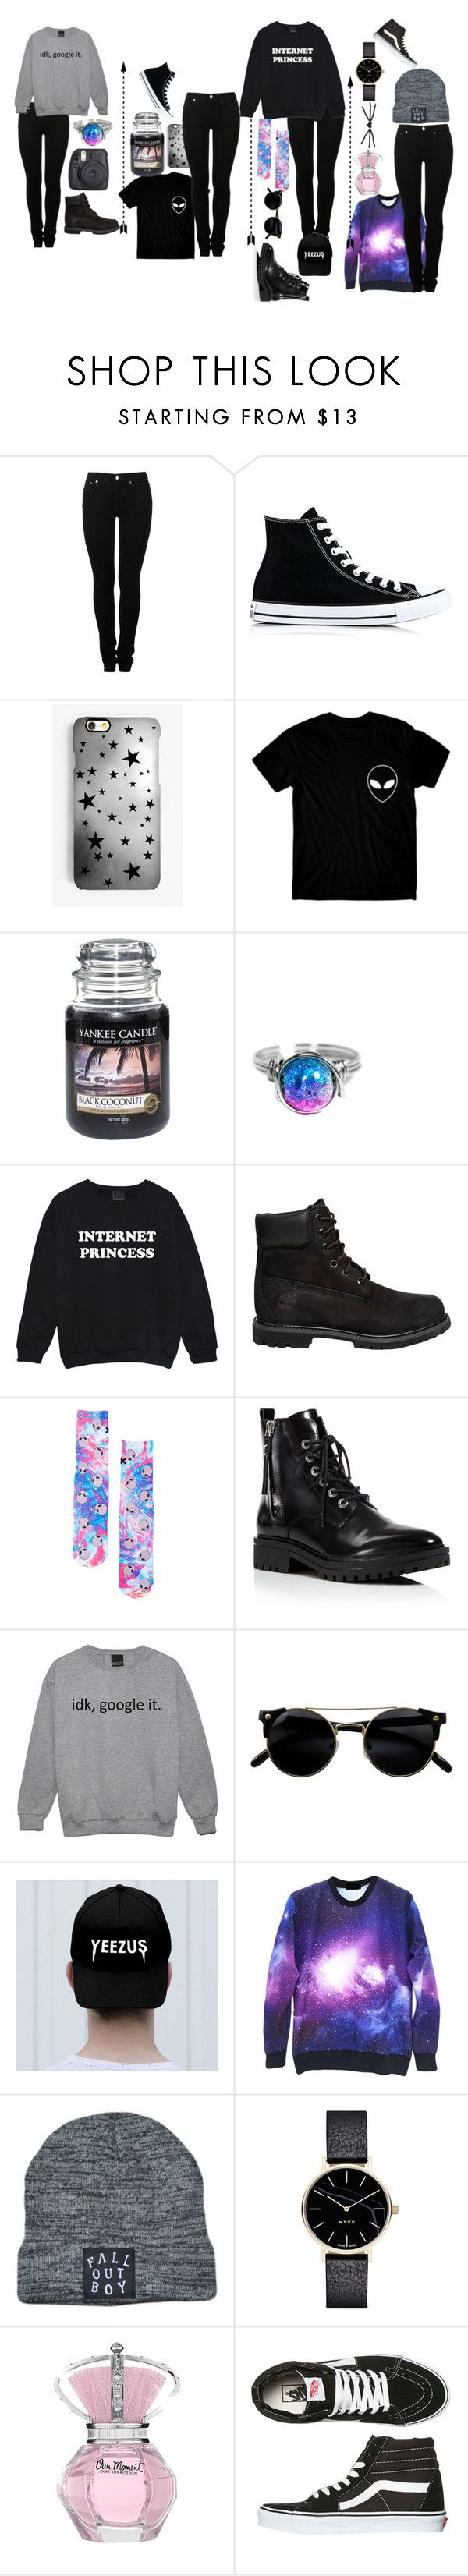 """""""dan howell inspired outfits"""" by aholabeth on Polyvore featuring MM6 Maison Margiela, Converse, Rianna Phillips, Yankee Candle, Timberland, Kendall + Kylie, Myku and Vans"""